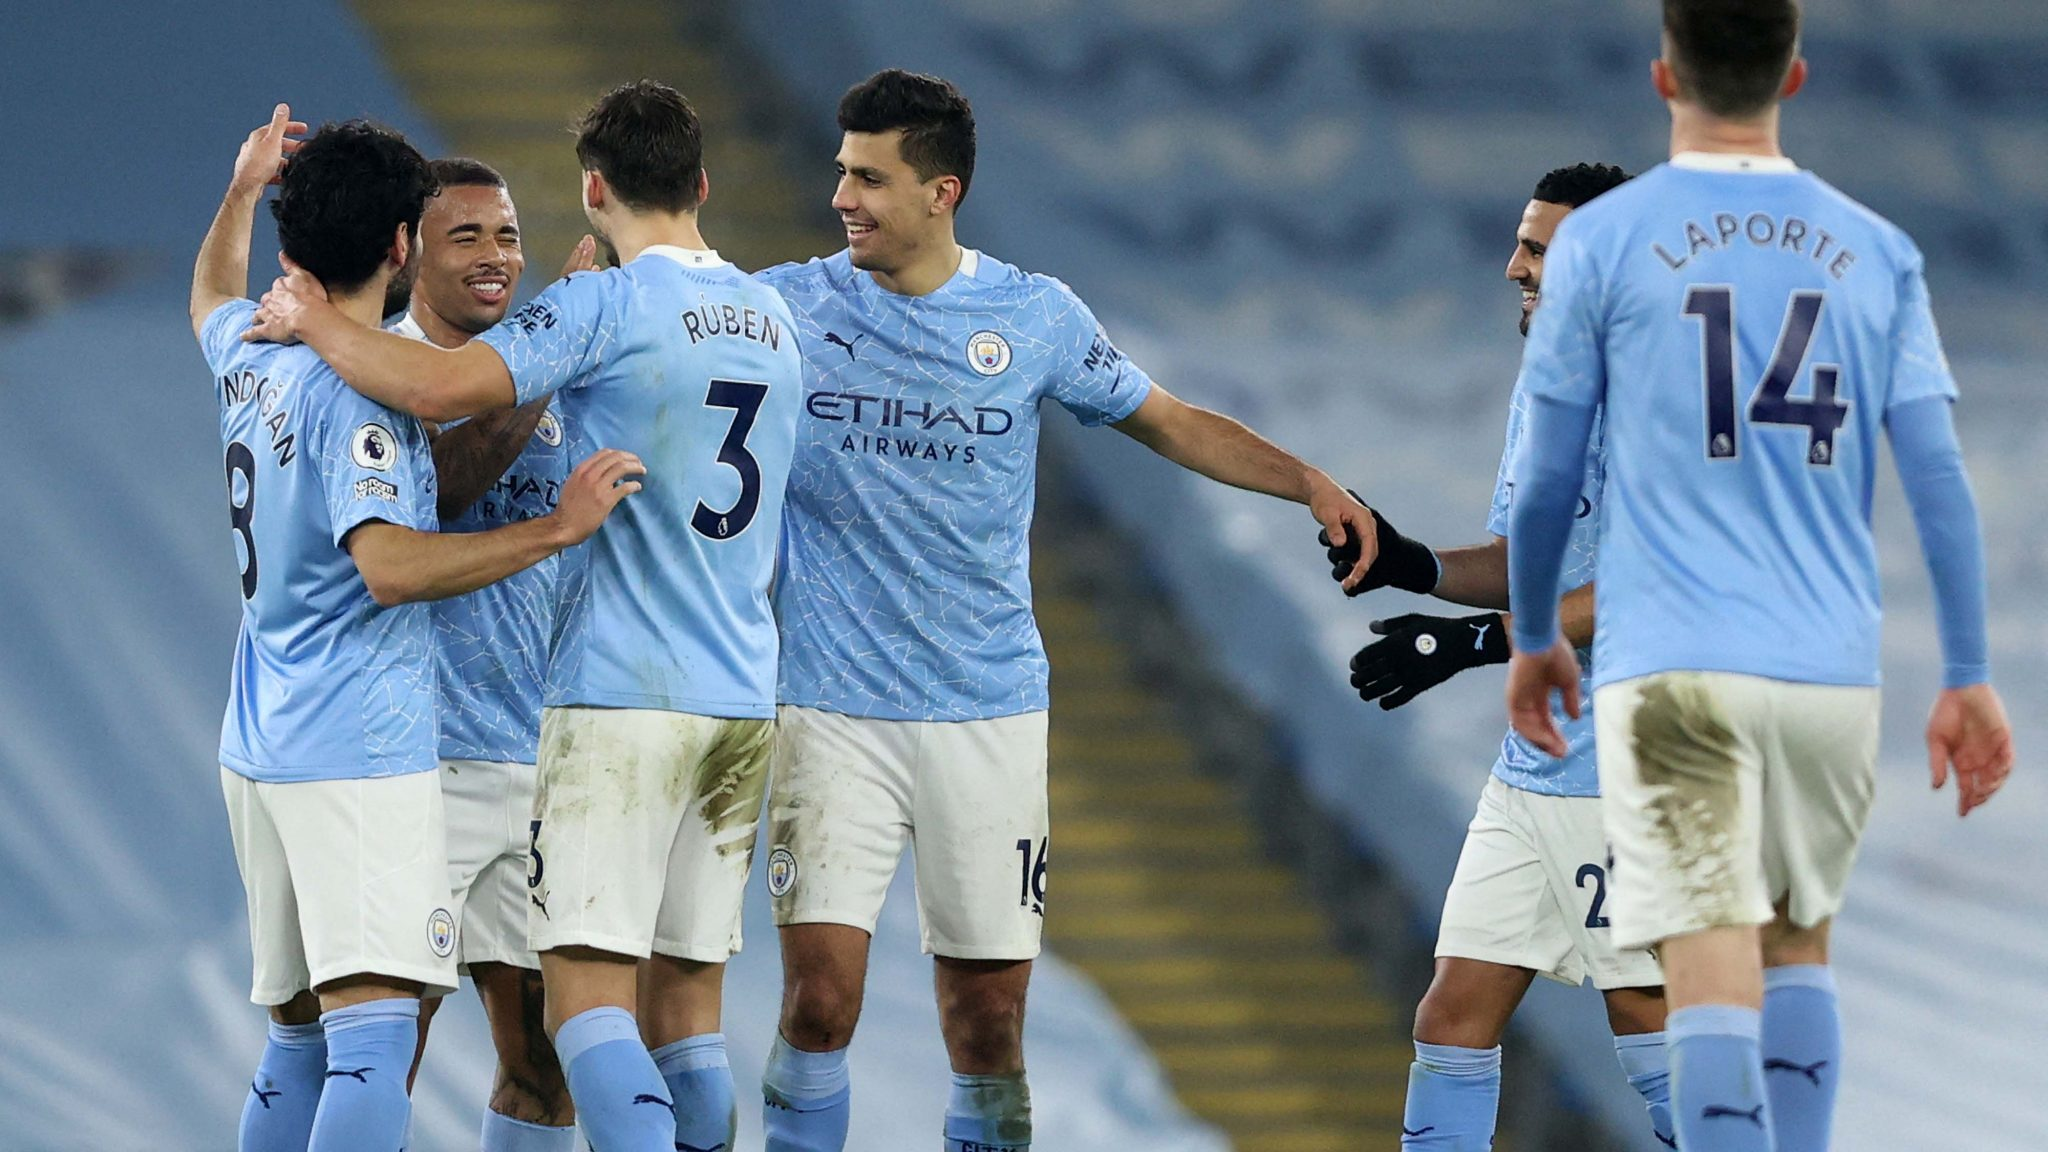 Man City Equal Arsenal's Premier League Record In Wolves Win